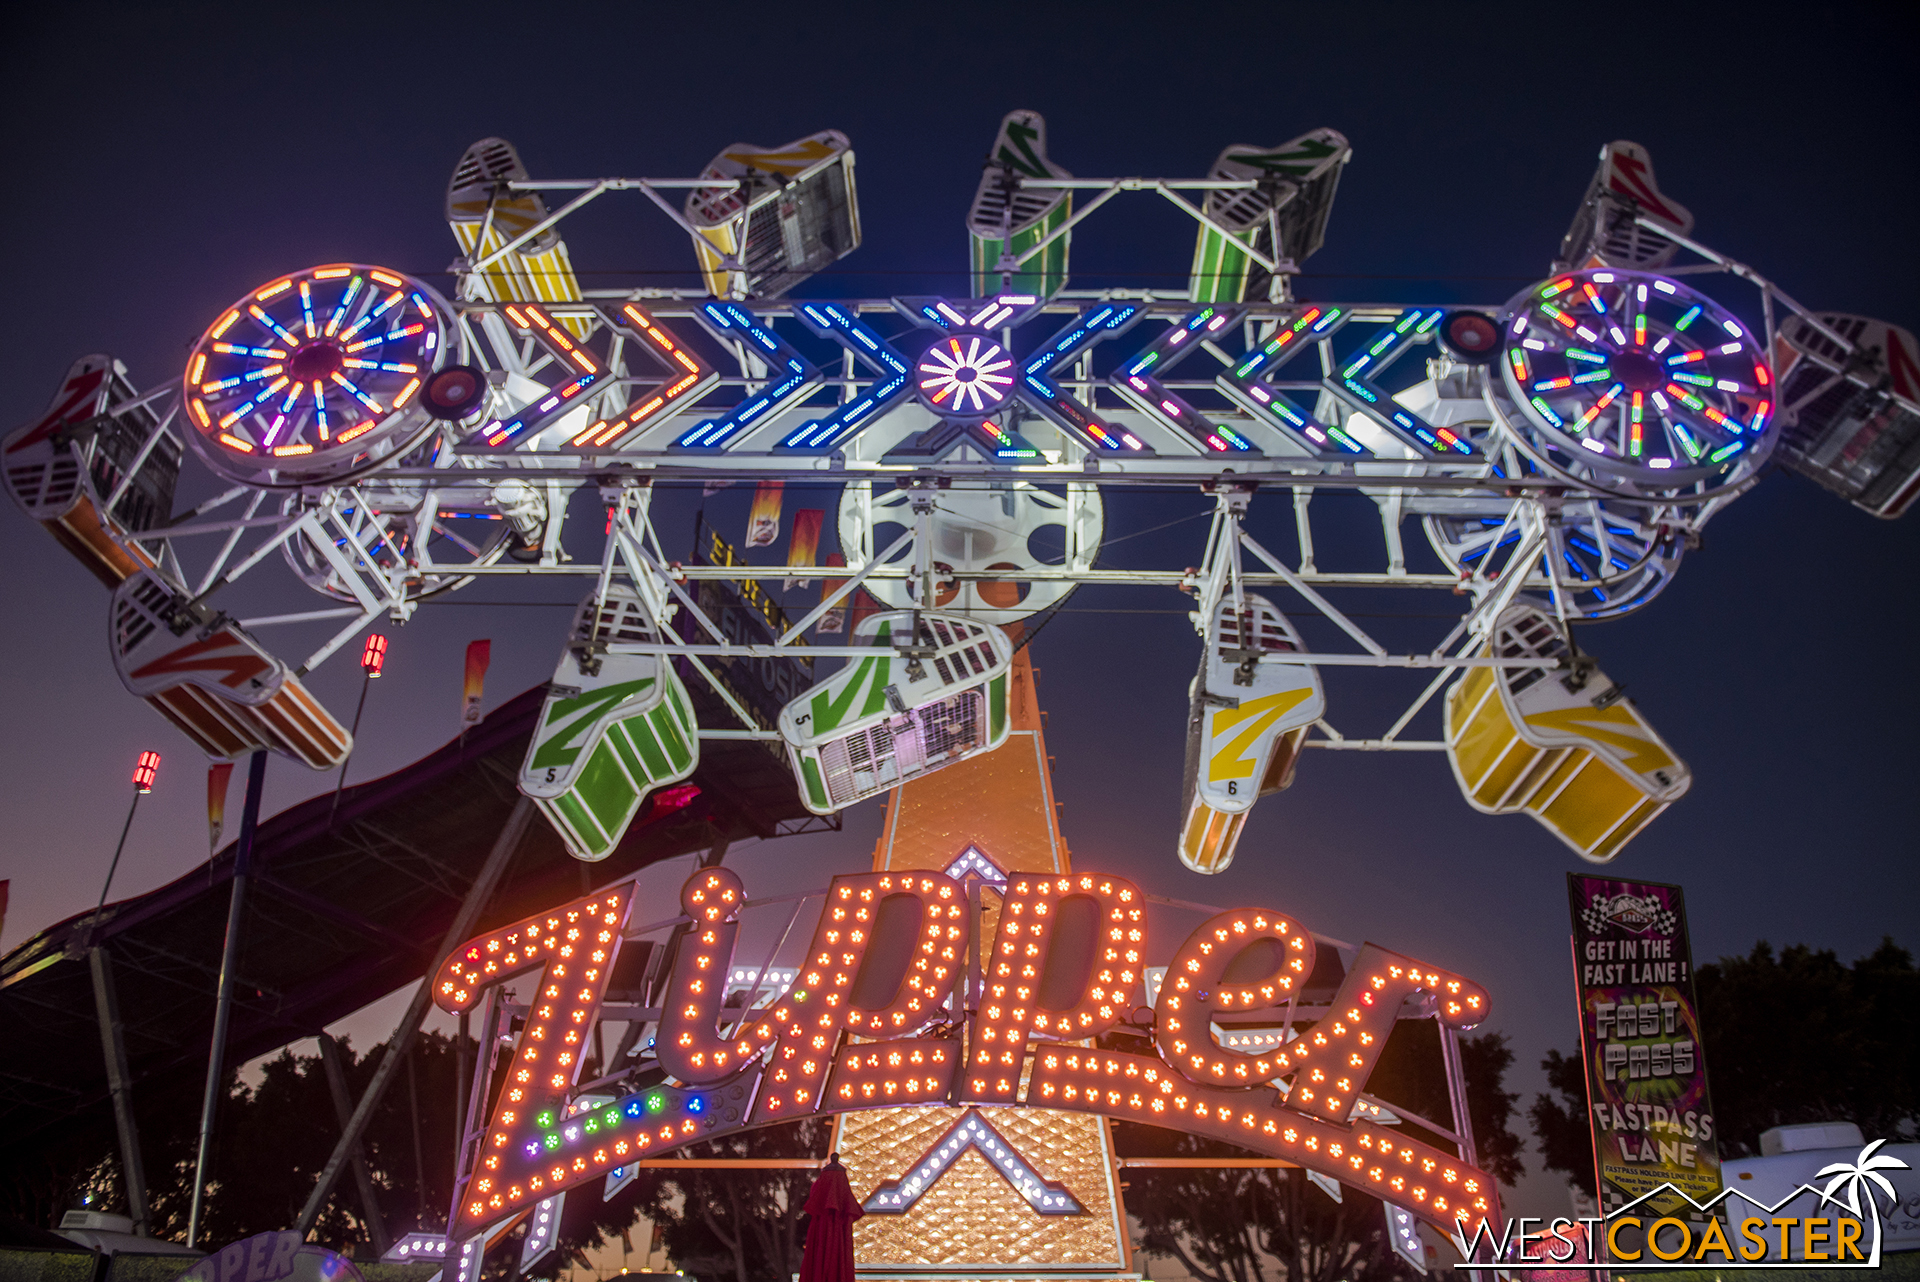 The Fair shines at night, though not brightly enough to mask the absurdity of what I still consider to be the freakiest attraction at the Fair.